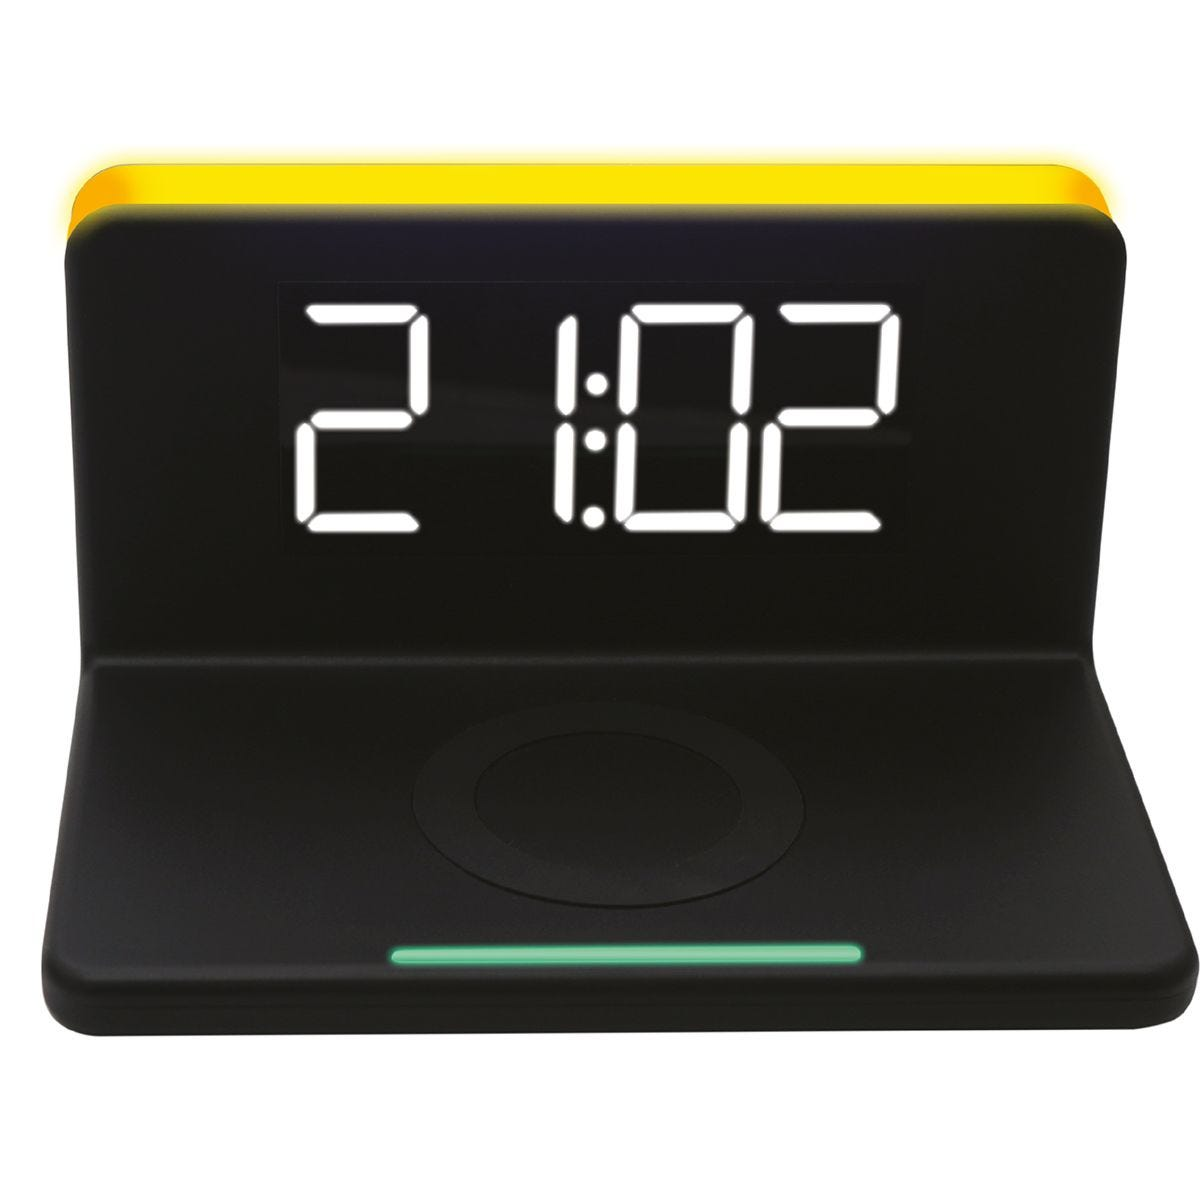 Daewoo Wireless Charger with Alarm Clock